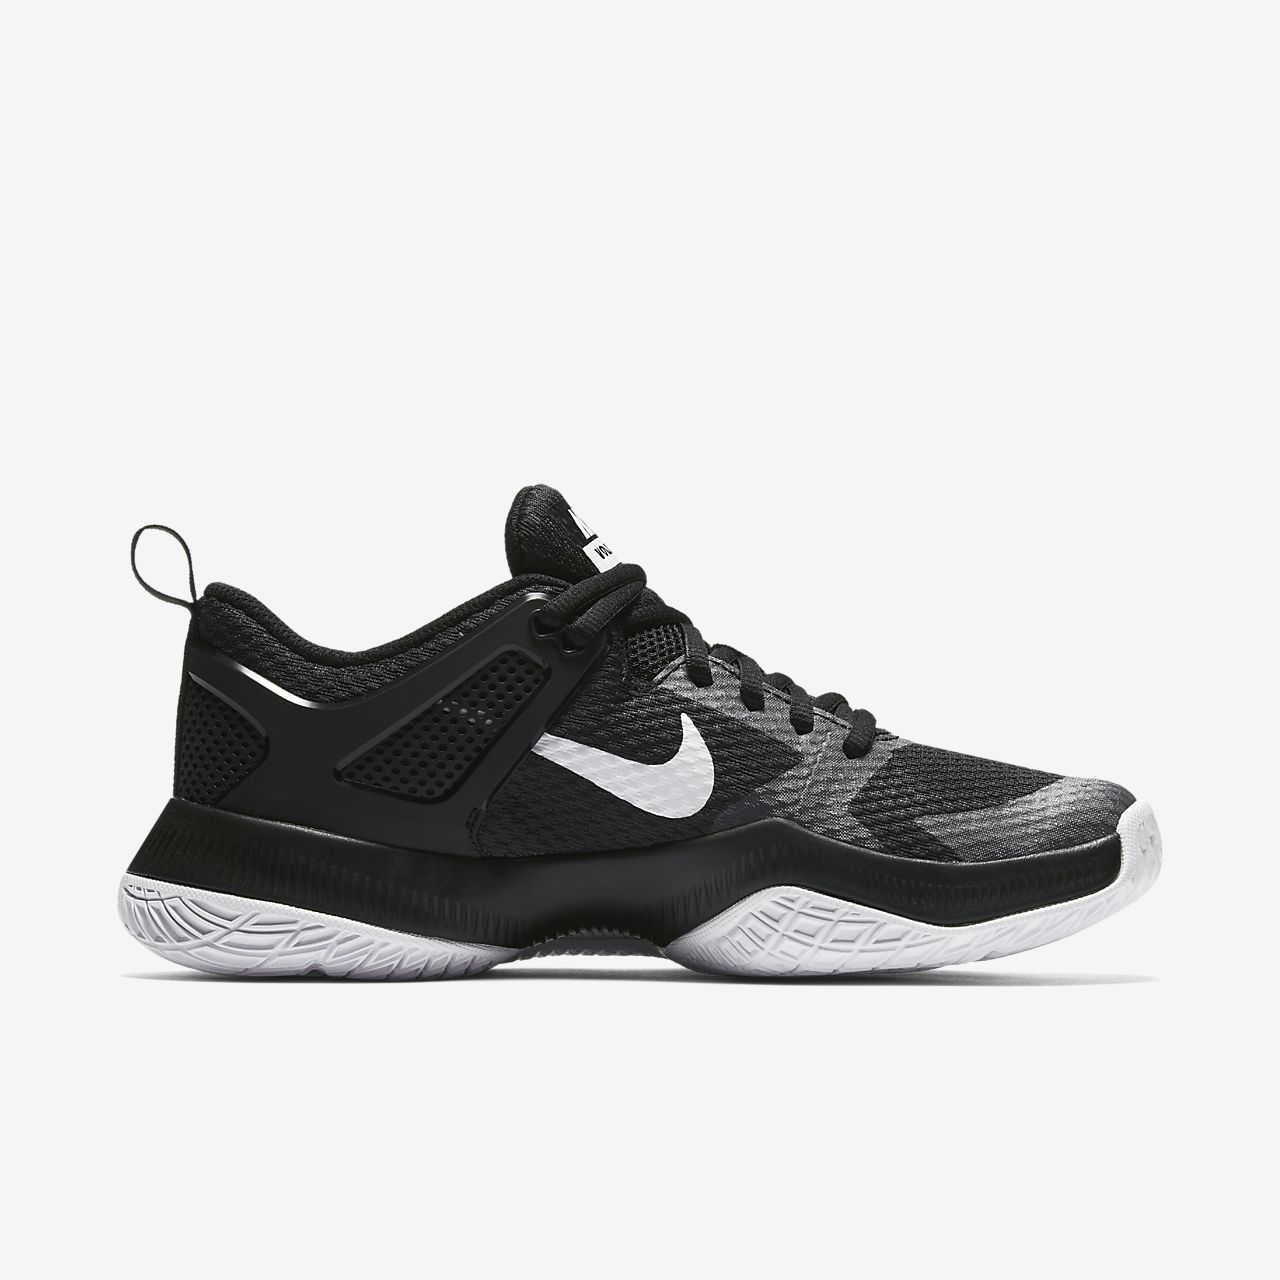 ... Nike Air Zoom HyperAce Women's Volleyball Shoe